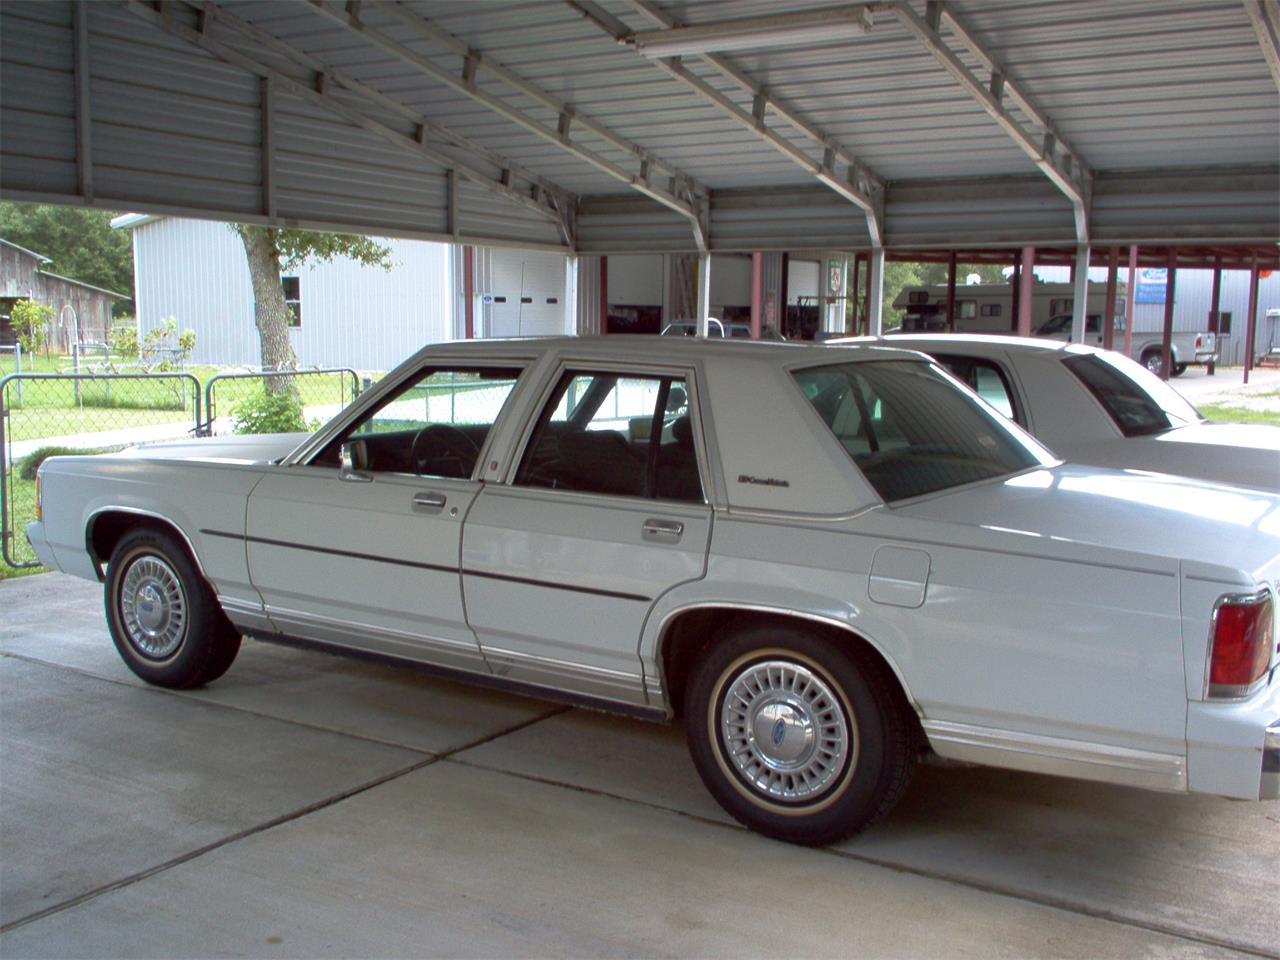 1989 Ford Crown Victoria For Sale Classiccarscom Cc 914190